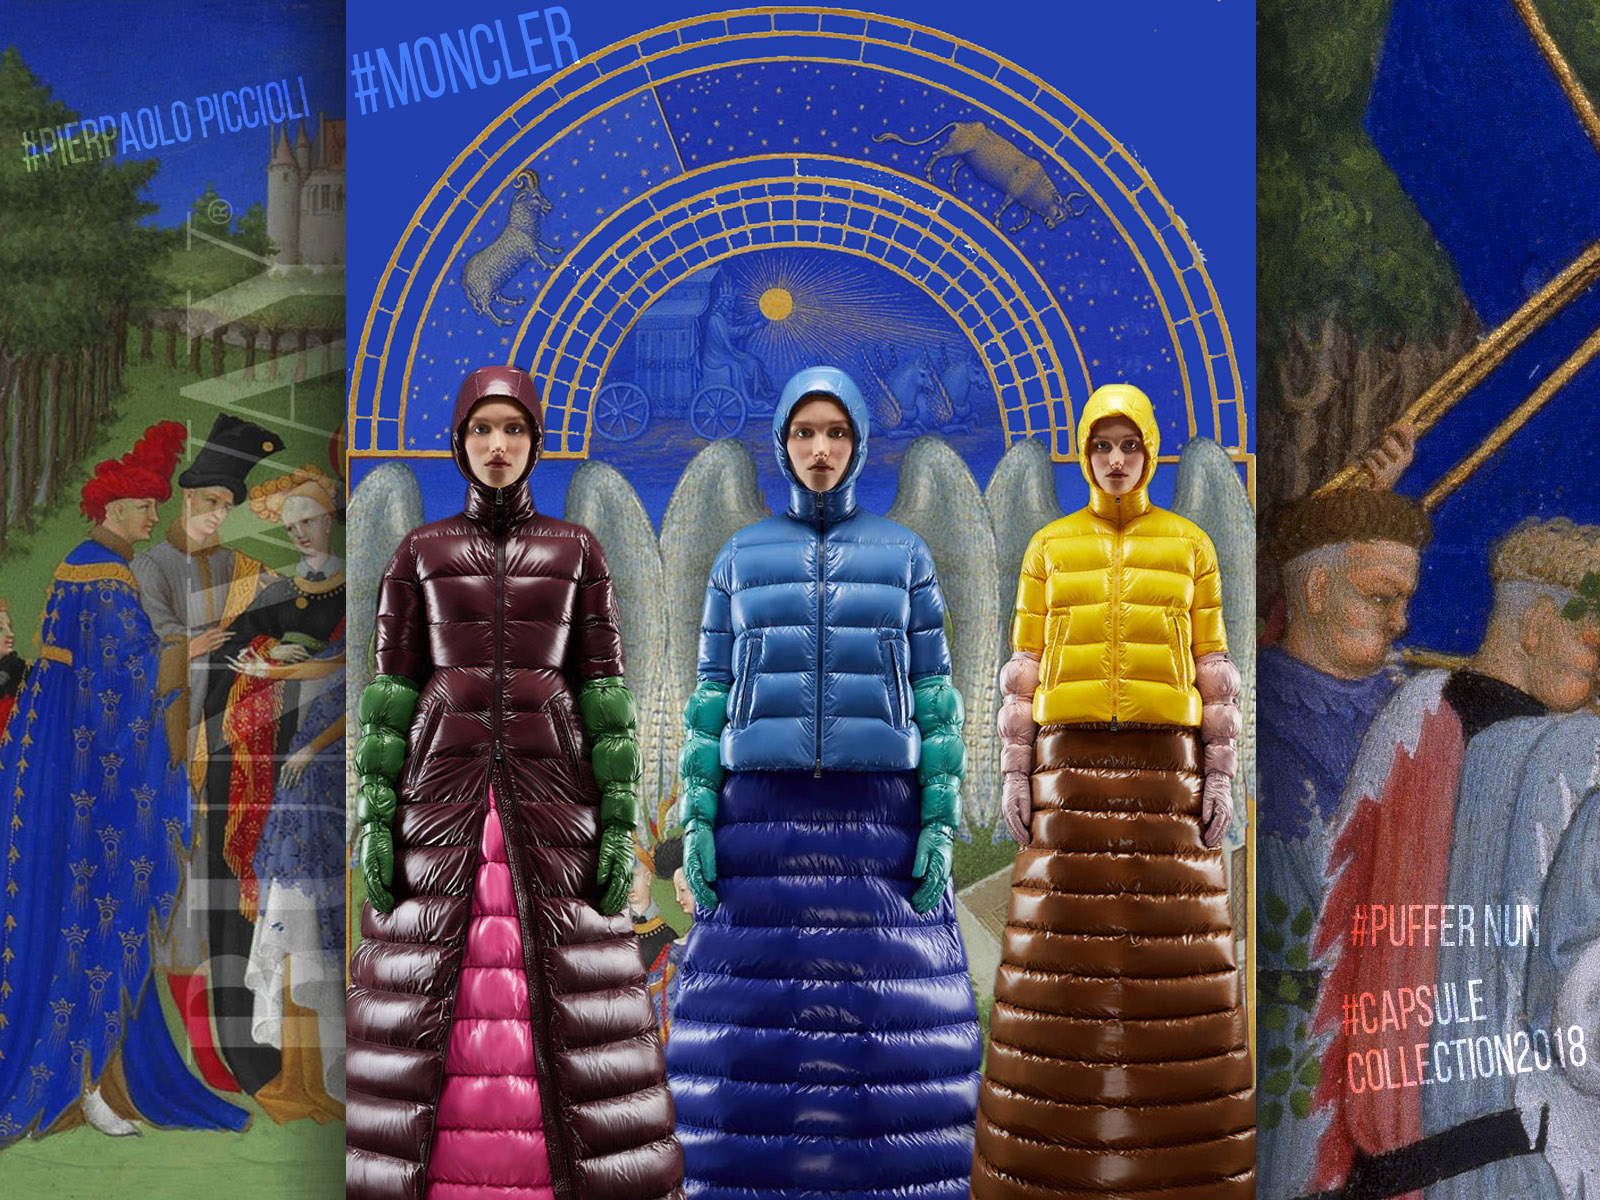 """Moncler """"Puffer Nun"""" Capsule Collection 2018 by Pierpaolo Piccioli by Runway Magazine"""